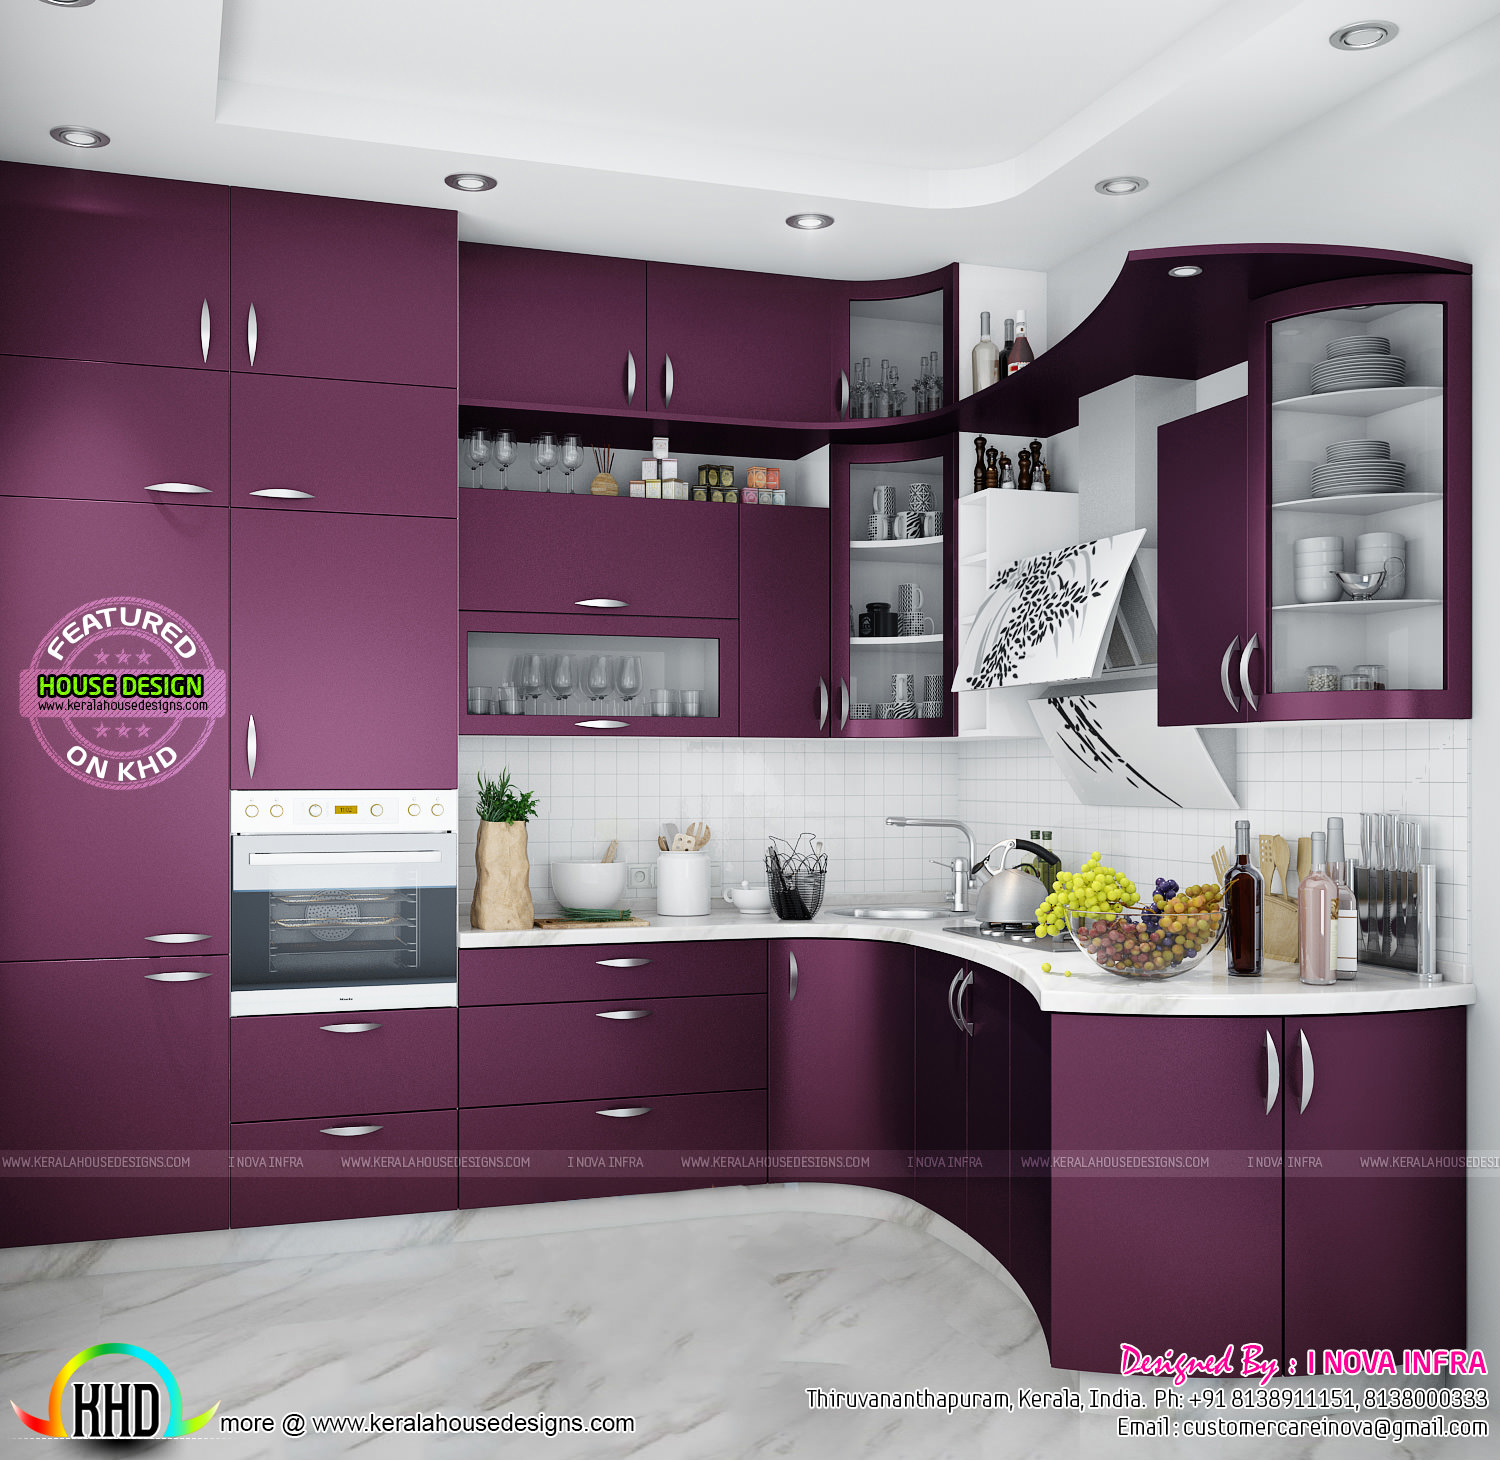 Modular kitchen kerala kerala home design and floor plans for Renovation ideas for small homes in india